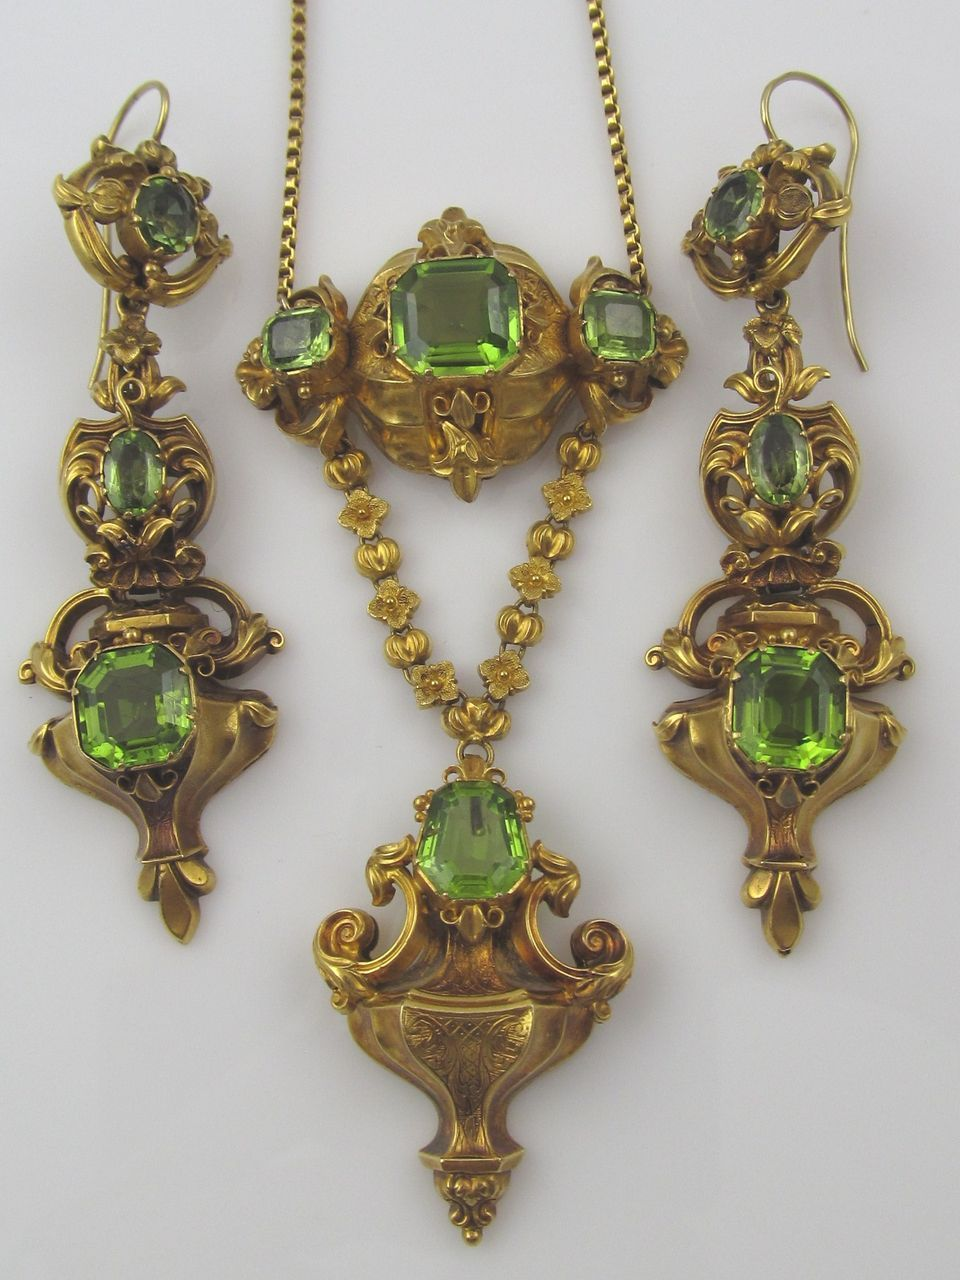 Georgian Era Boxed Set Of Earrings And Pendant Necklace Featuring Natural  Peridot Stones Set In 14 Karat Gold